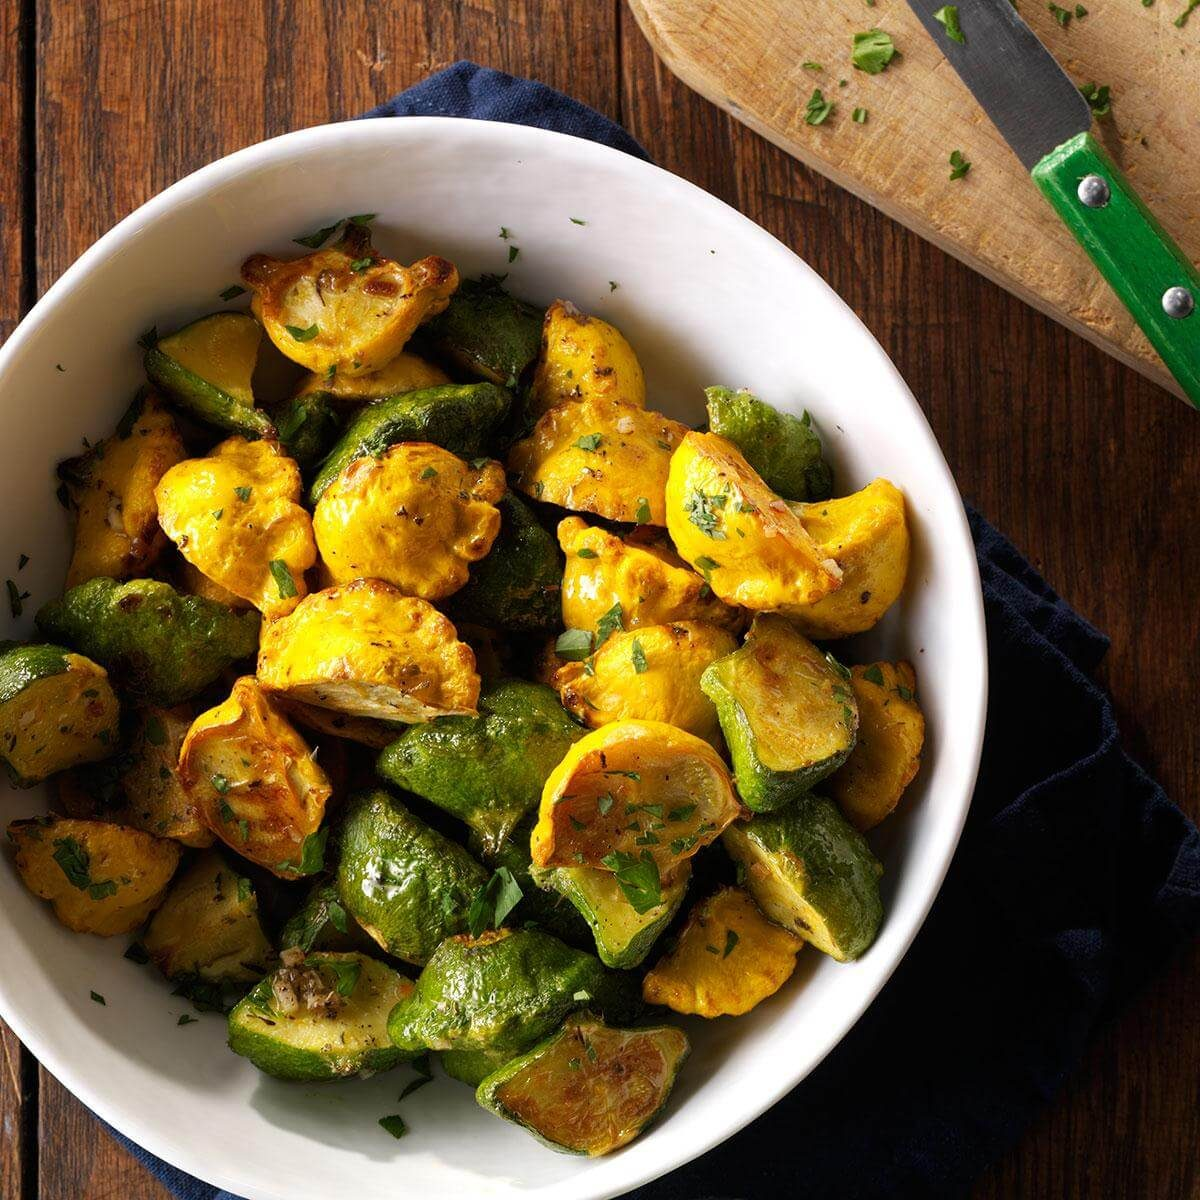 Garlic-Herb Pattypan Squash